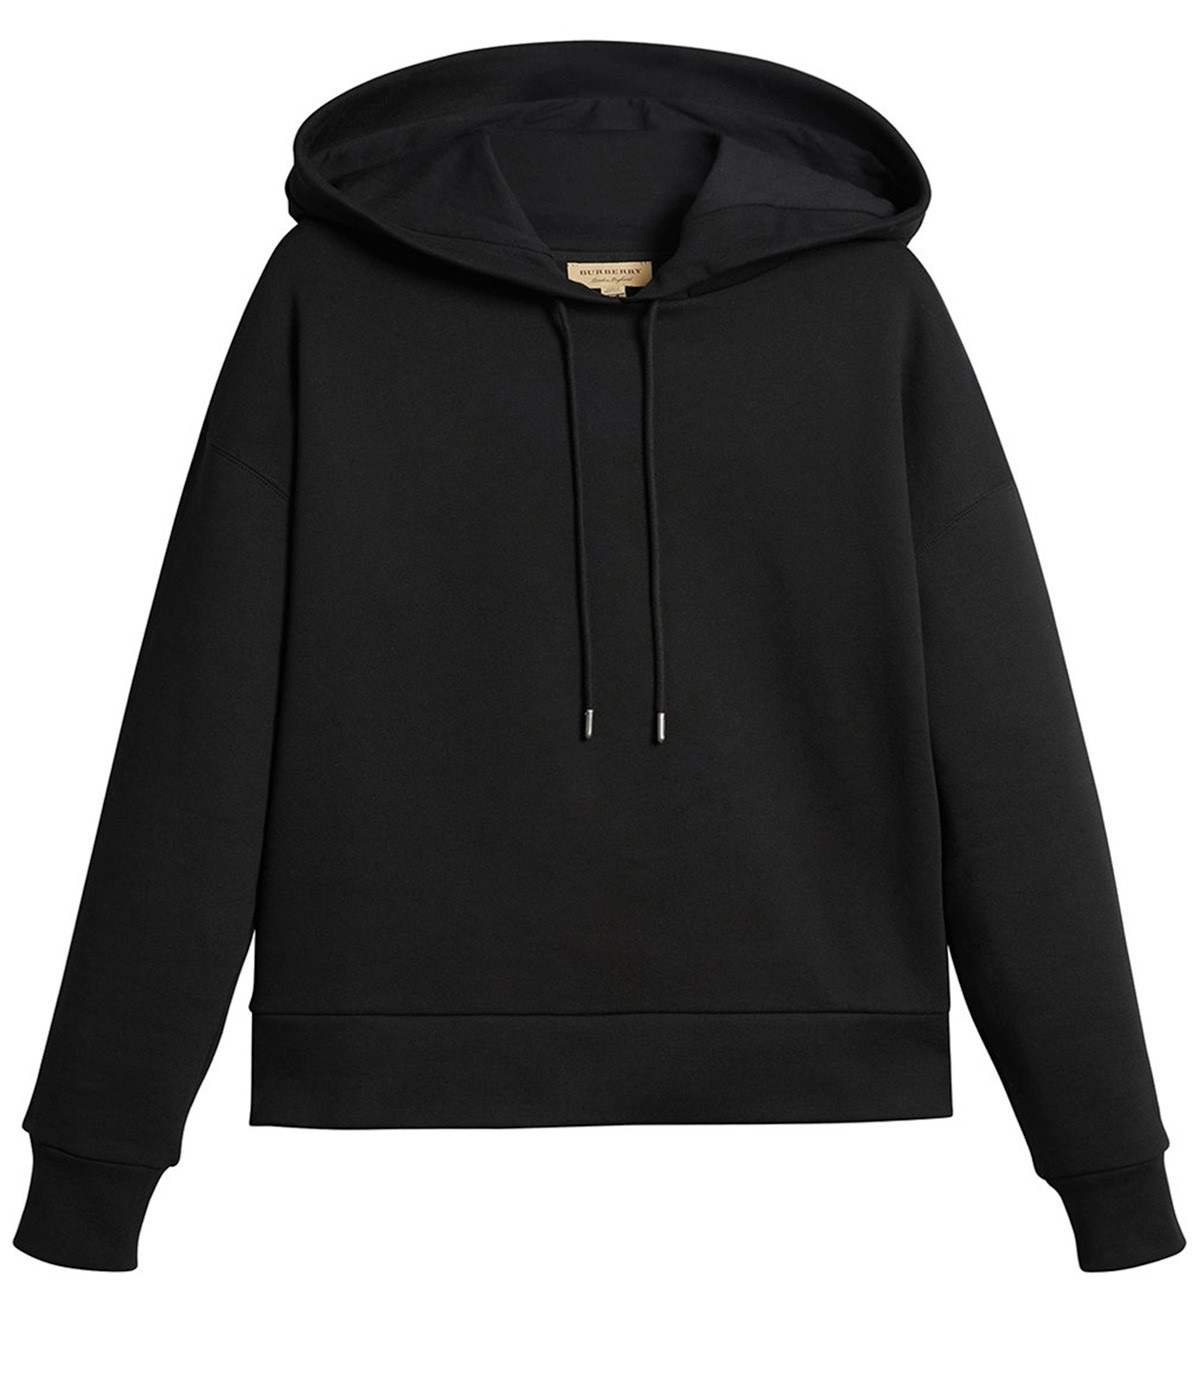 Burberry Embroidered Hood Sweatshirt In Black